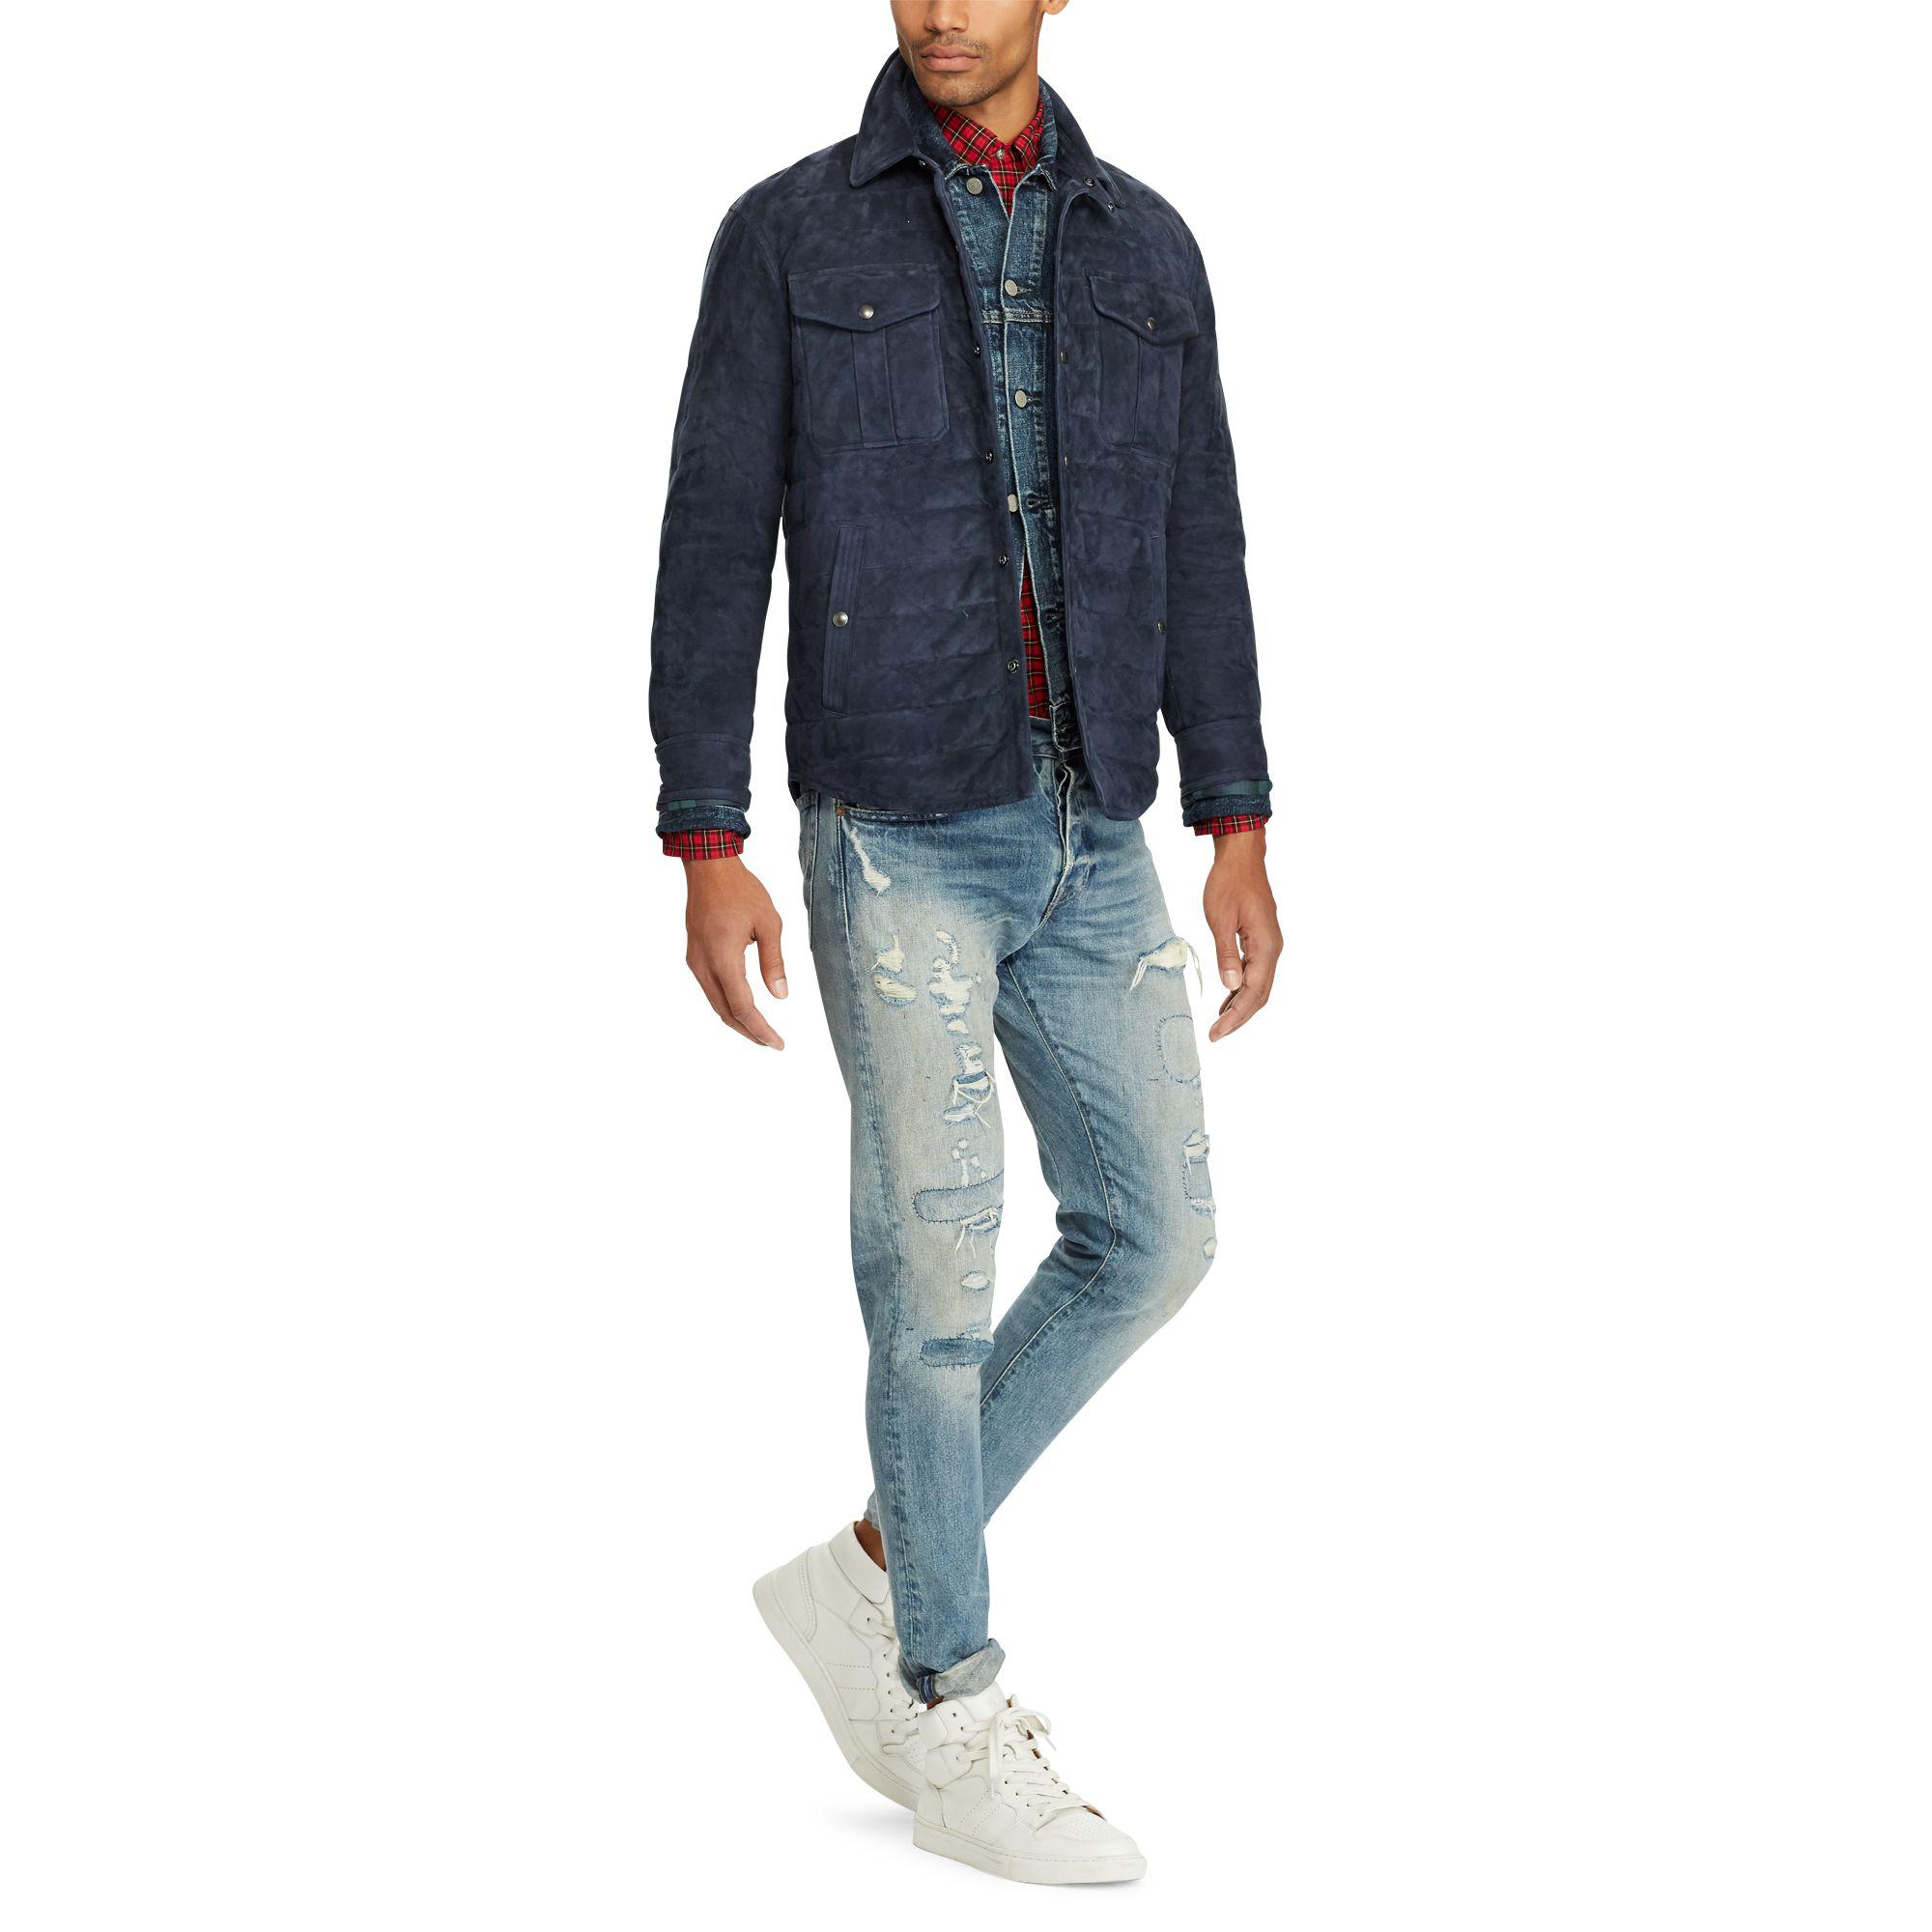 Polo Ralph Lauren - Blue Quilted Suede Down Jacket for Men - Lyst. View  fullscreen